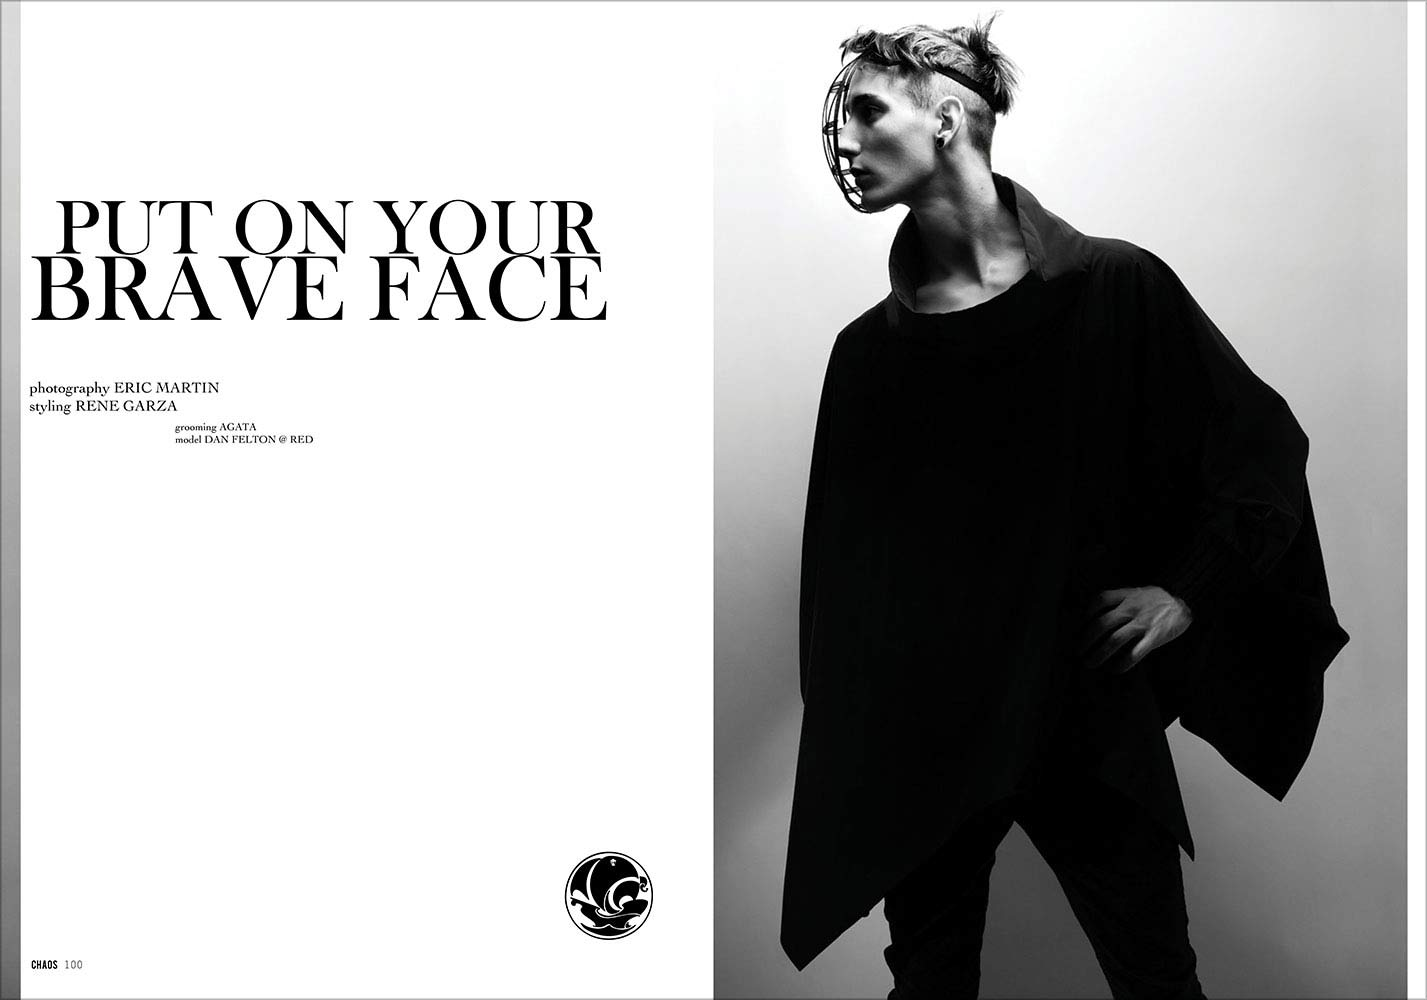 chaos-magazine_put-on-your-brave-face_01_2009_0706_outlined